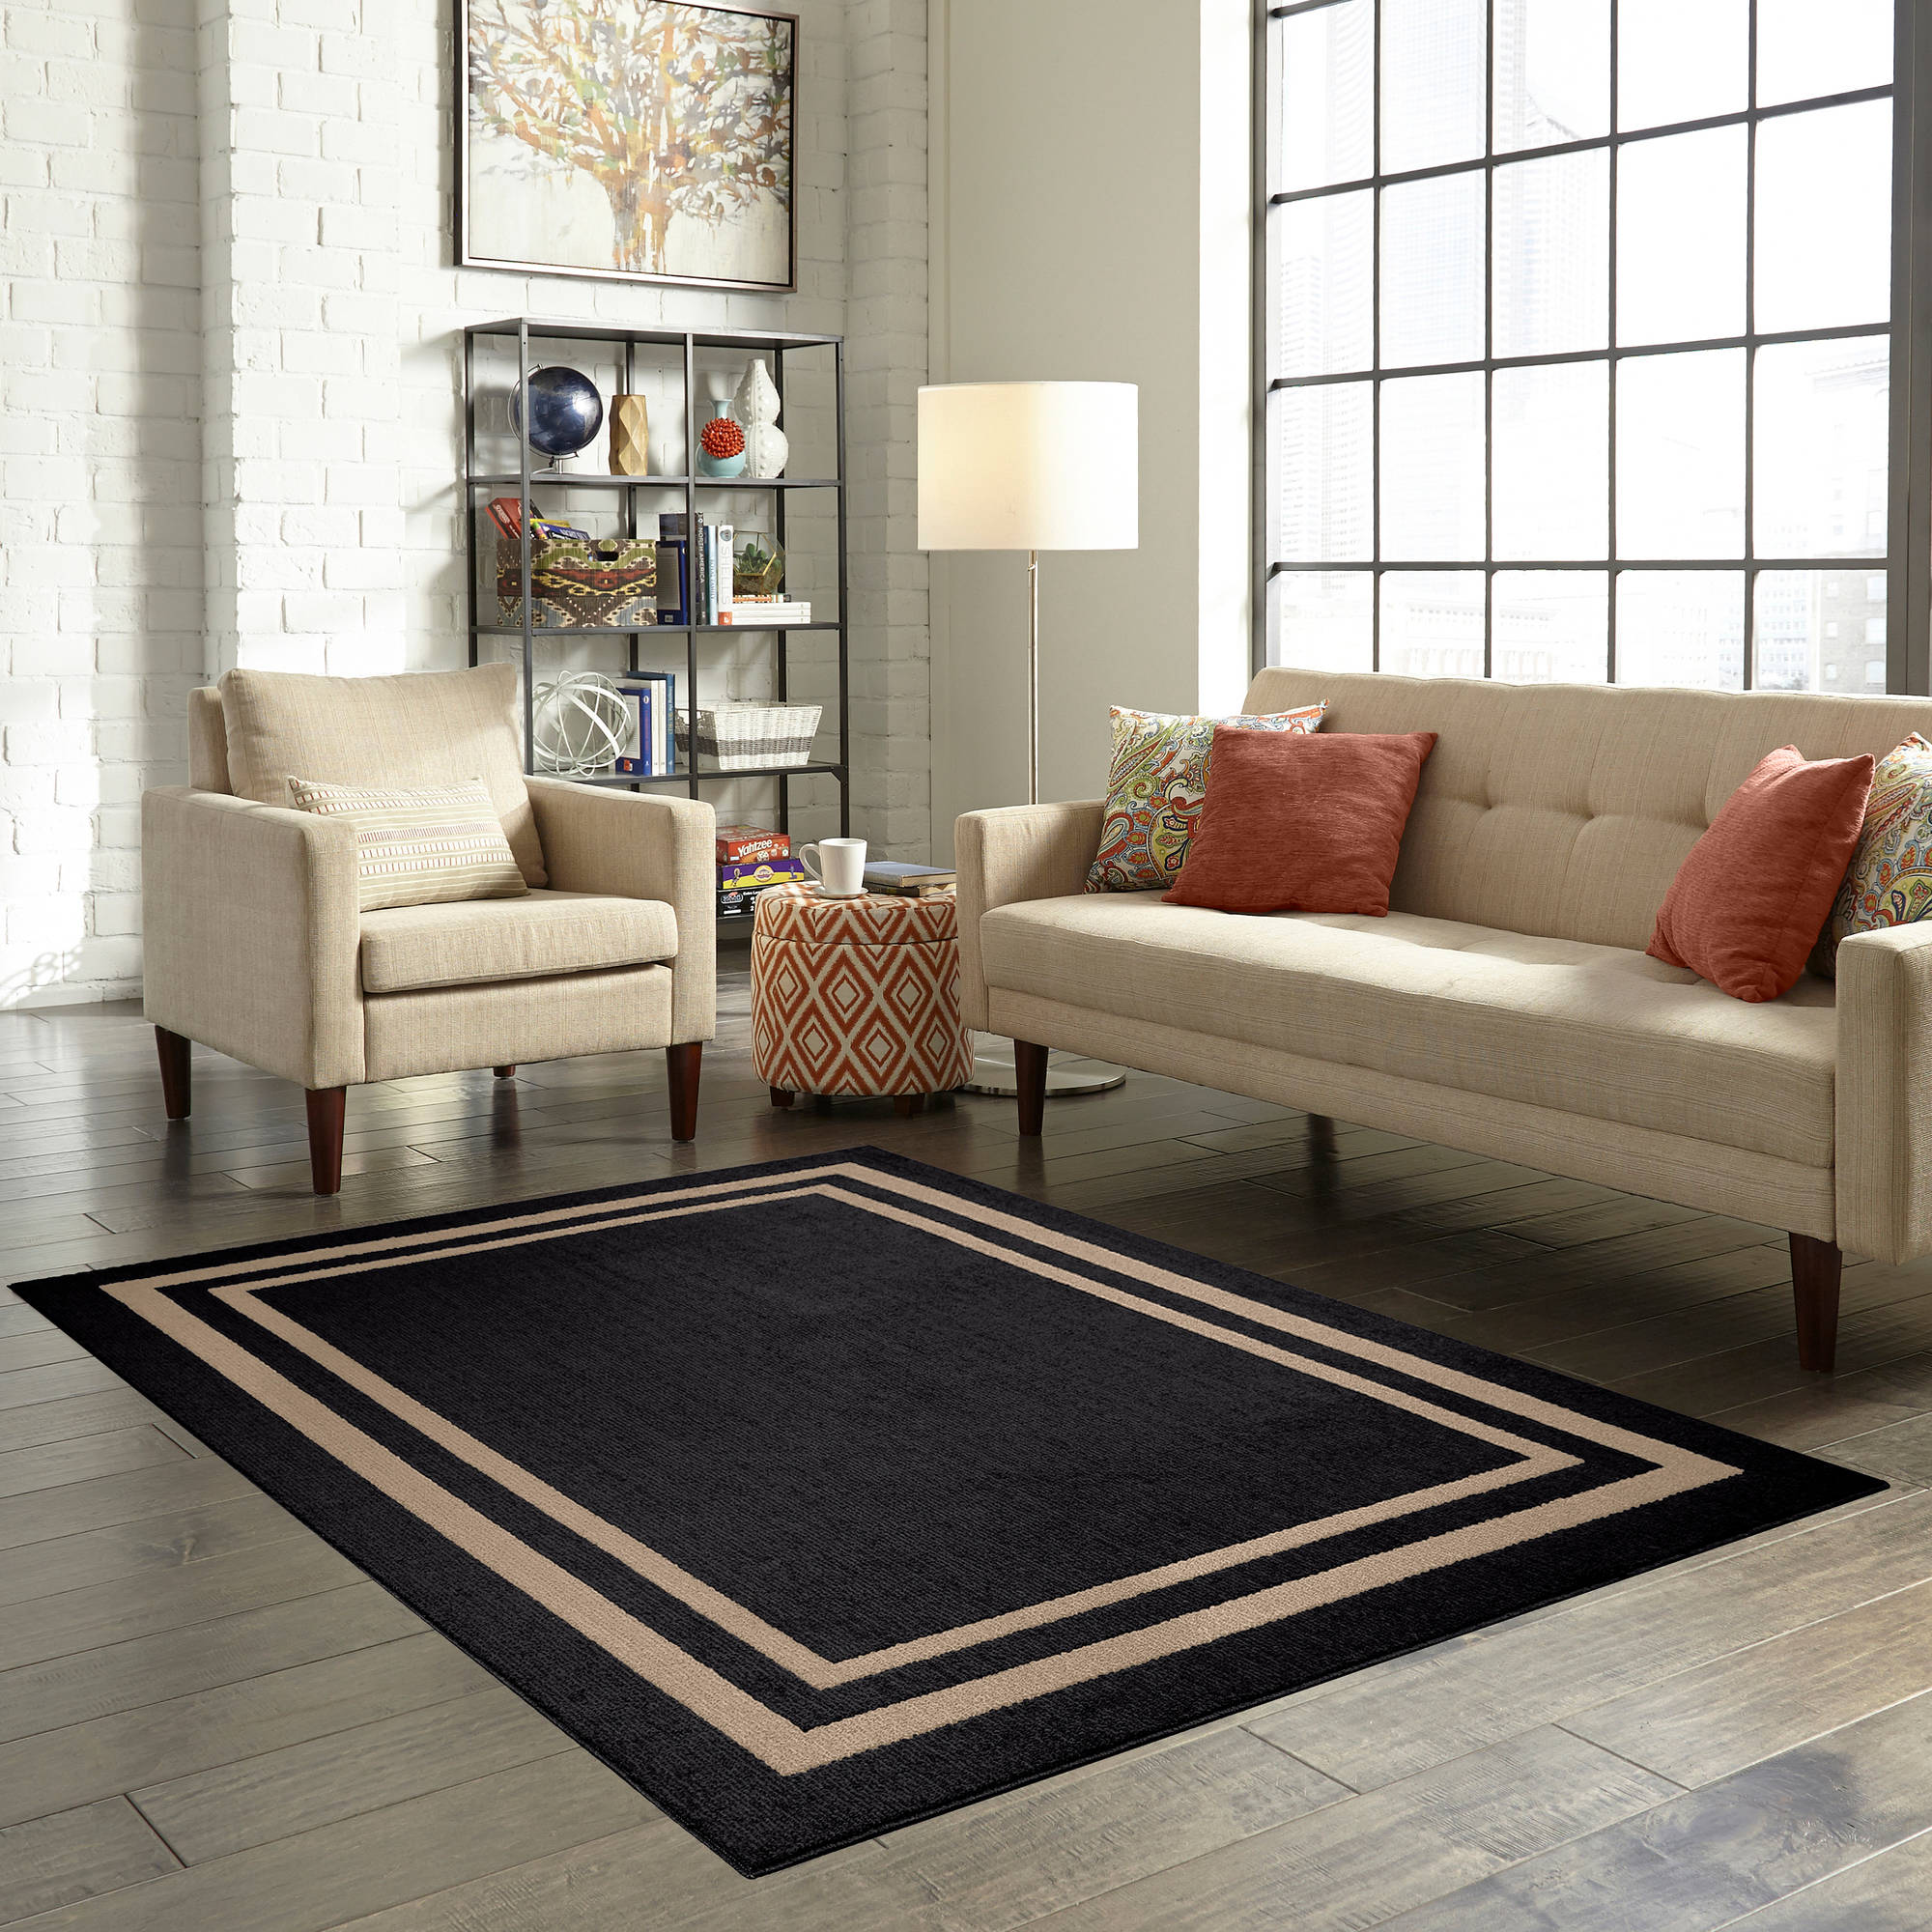 Mainstays Black Frame Border Area Rug 30in X 46in Ebay